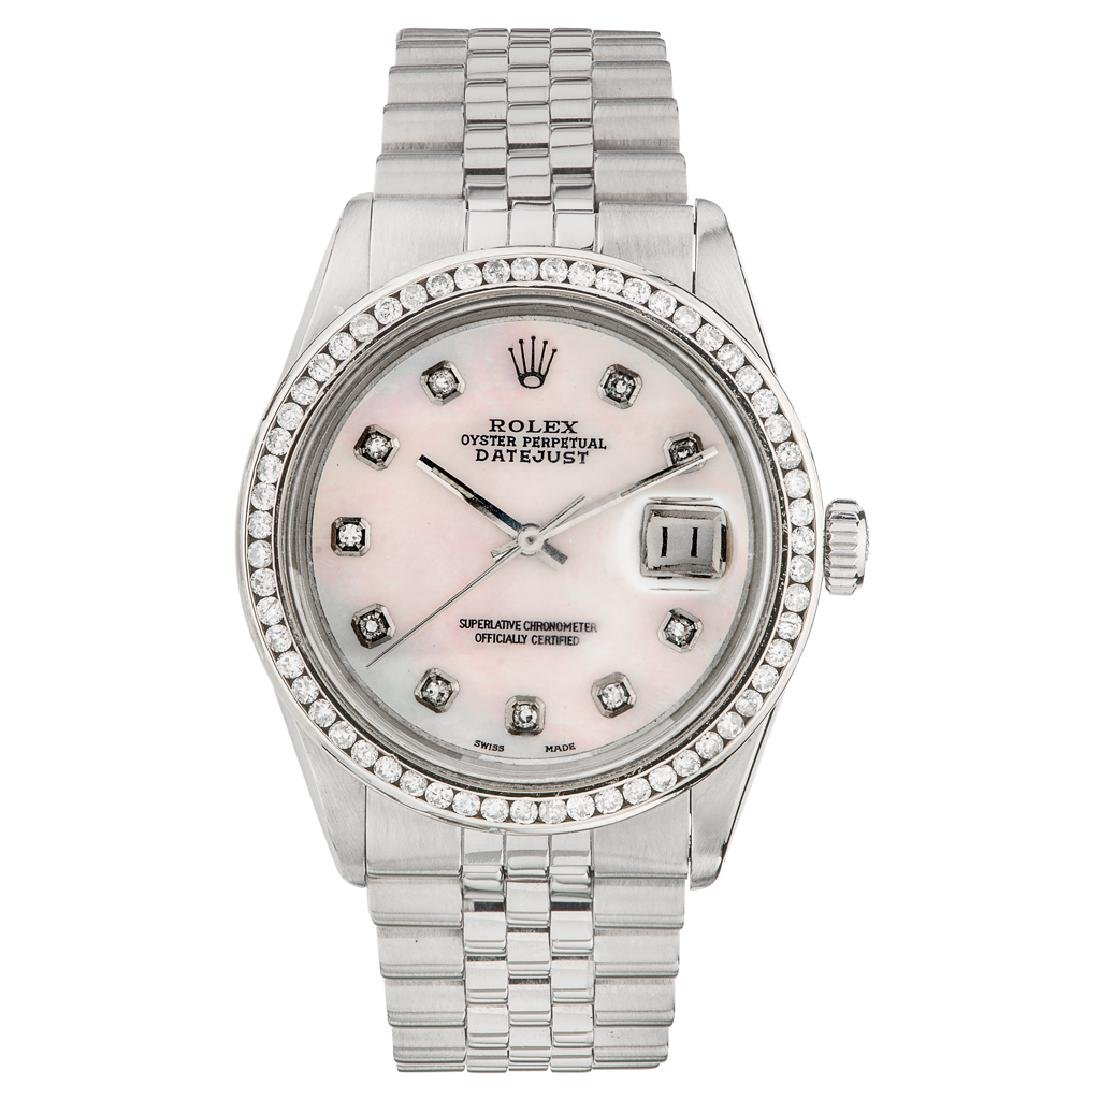 ROLEX OYSTER PERPETUAL DATEJUST WRISTWATCH REF. 16014,